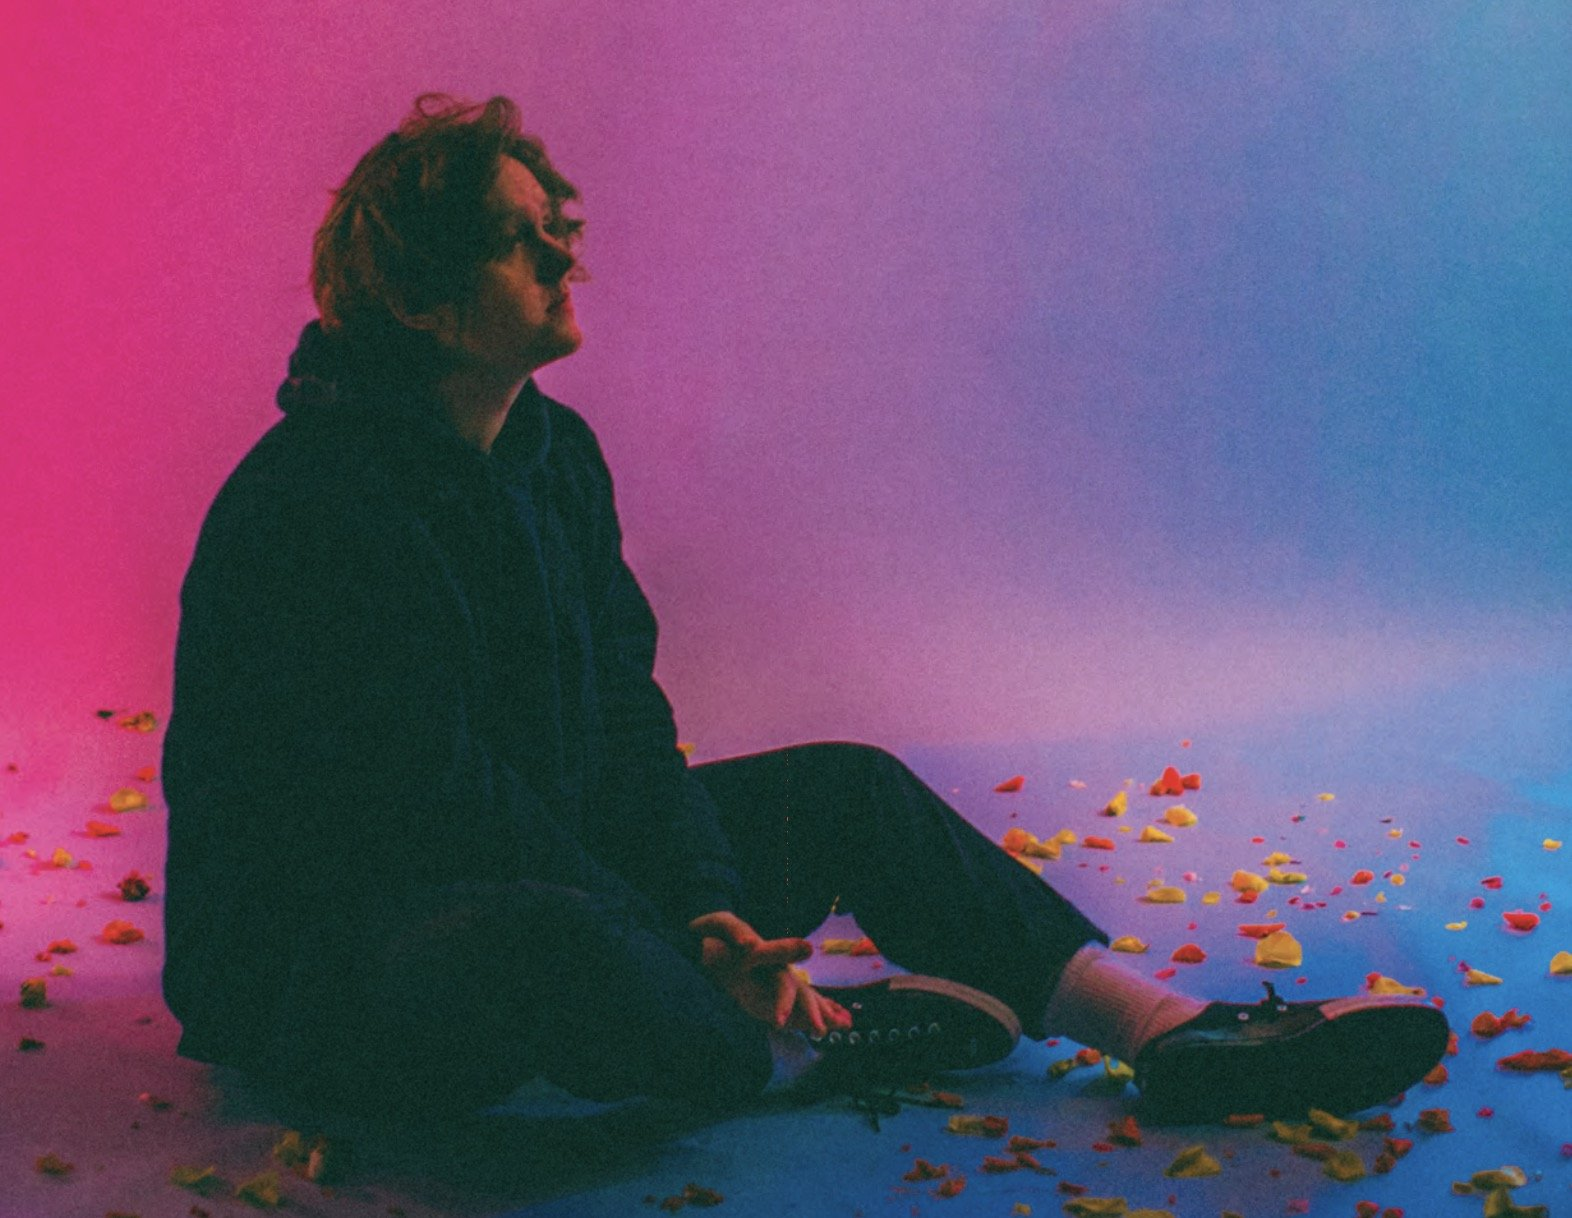 How Lewis Capaldi became a billion-stream superstar – according to his manager, Ryan Walter